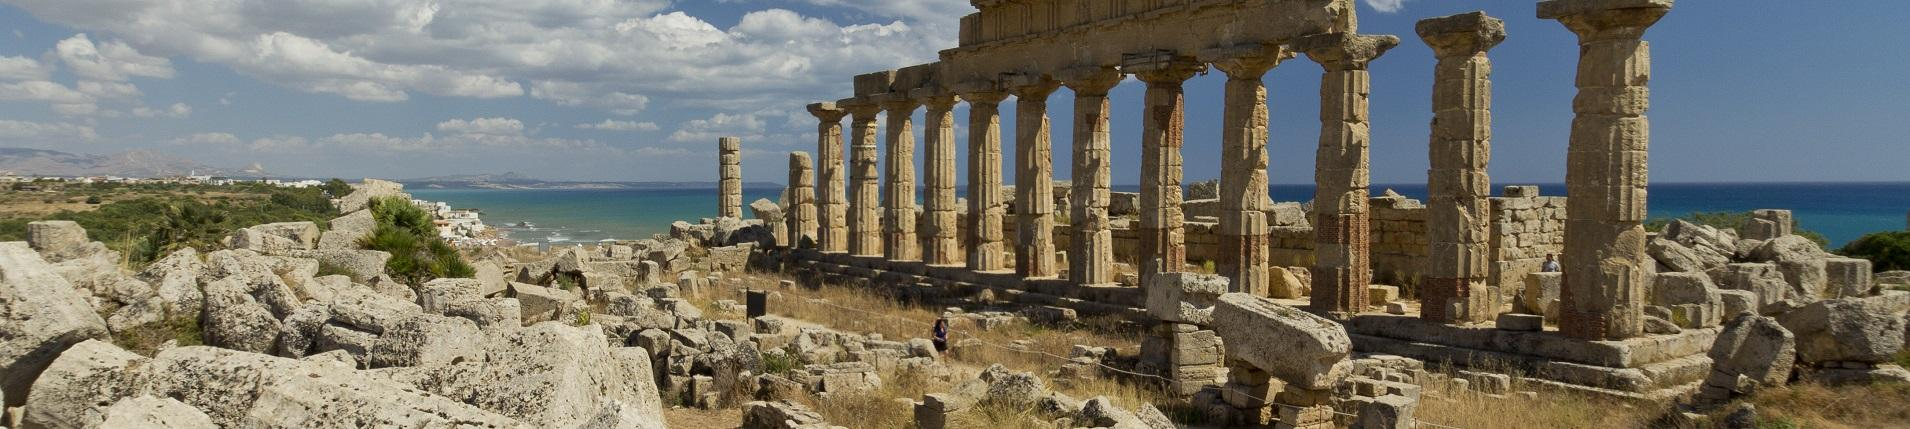 Villas in Sicily for culture-seekers